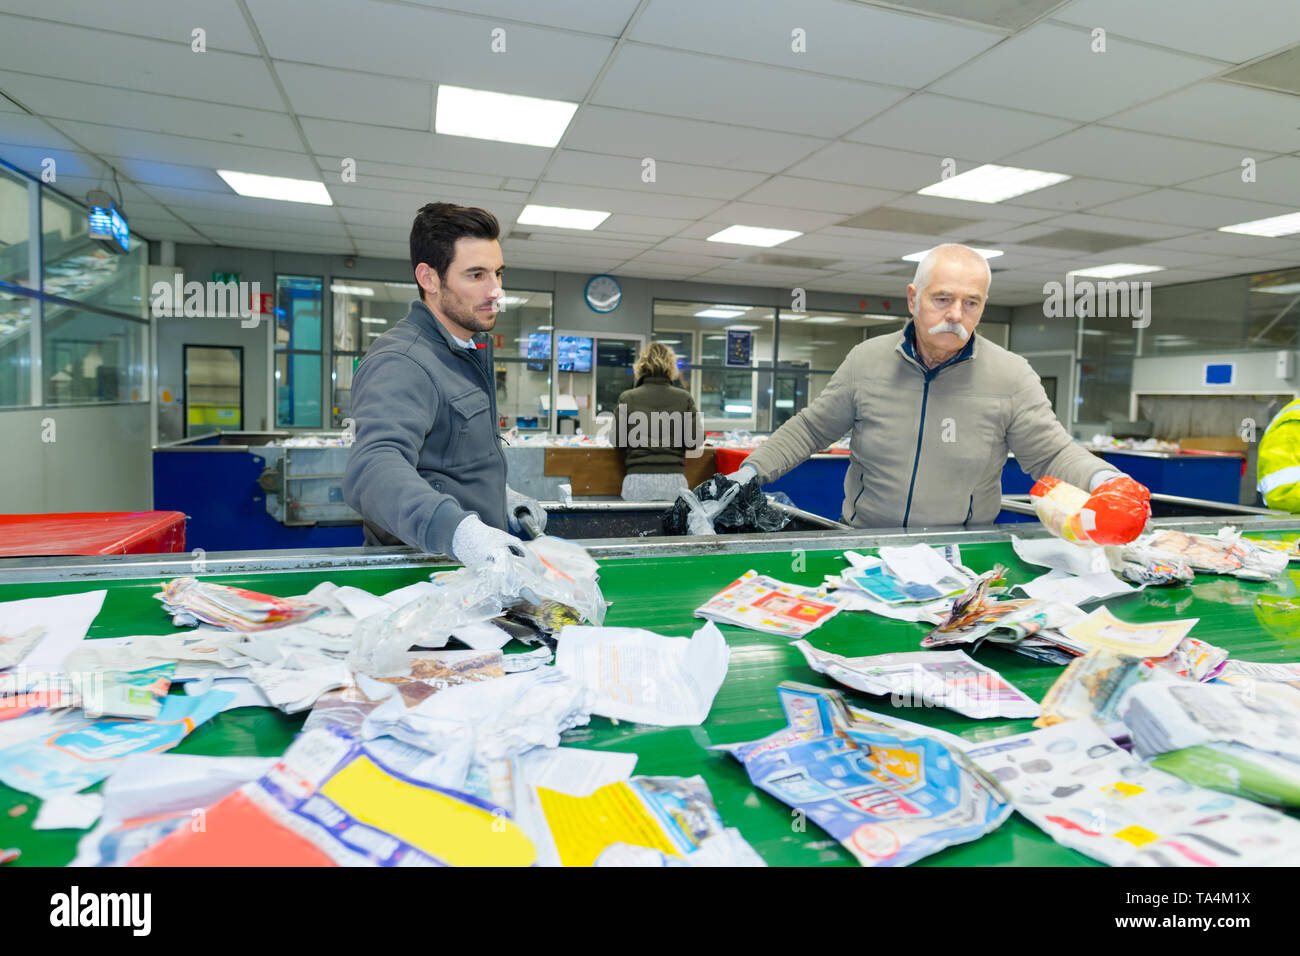 workers sorting through paper waste in recycling center - Stock Image